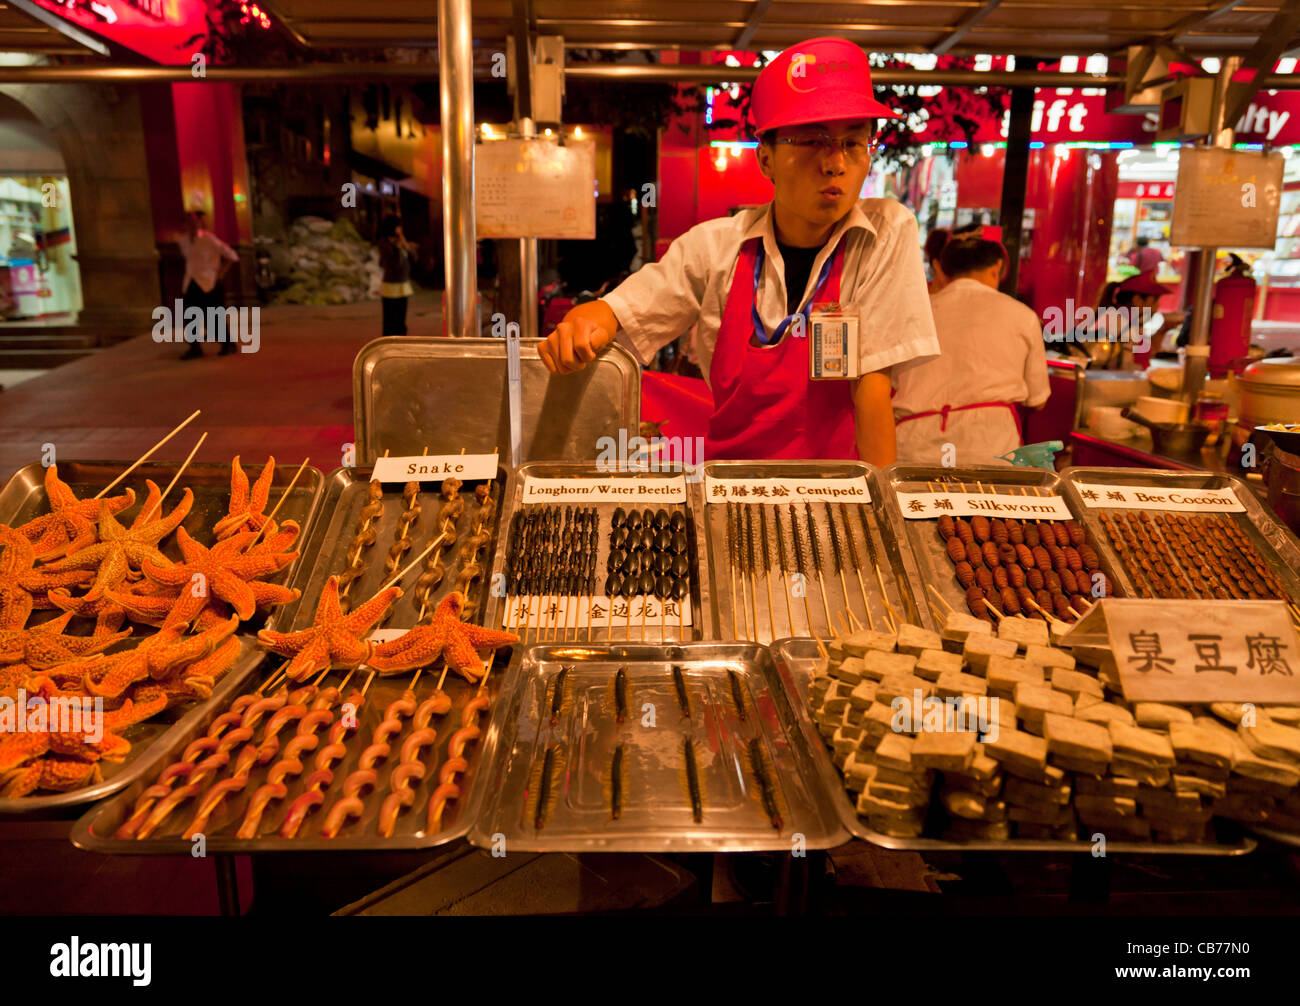 serving exotic food at the Wangfujing night market, Beijing,PRC Peoples Republic of China, Asia - Stock Image